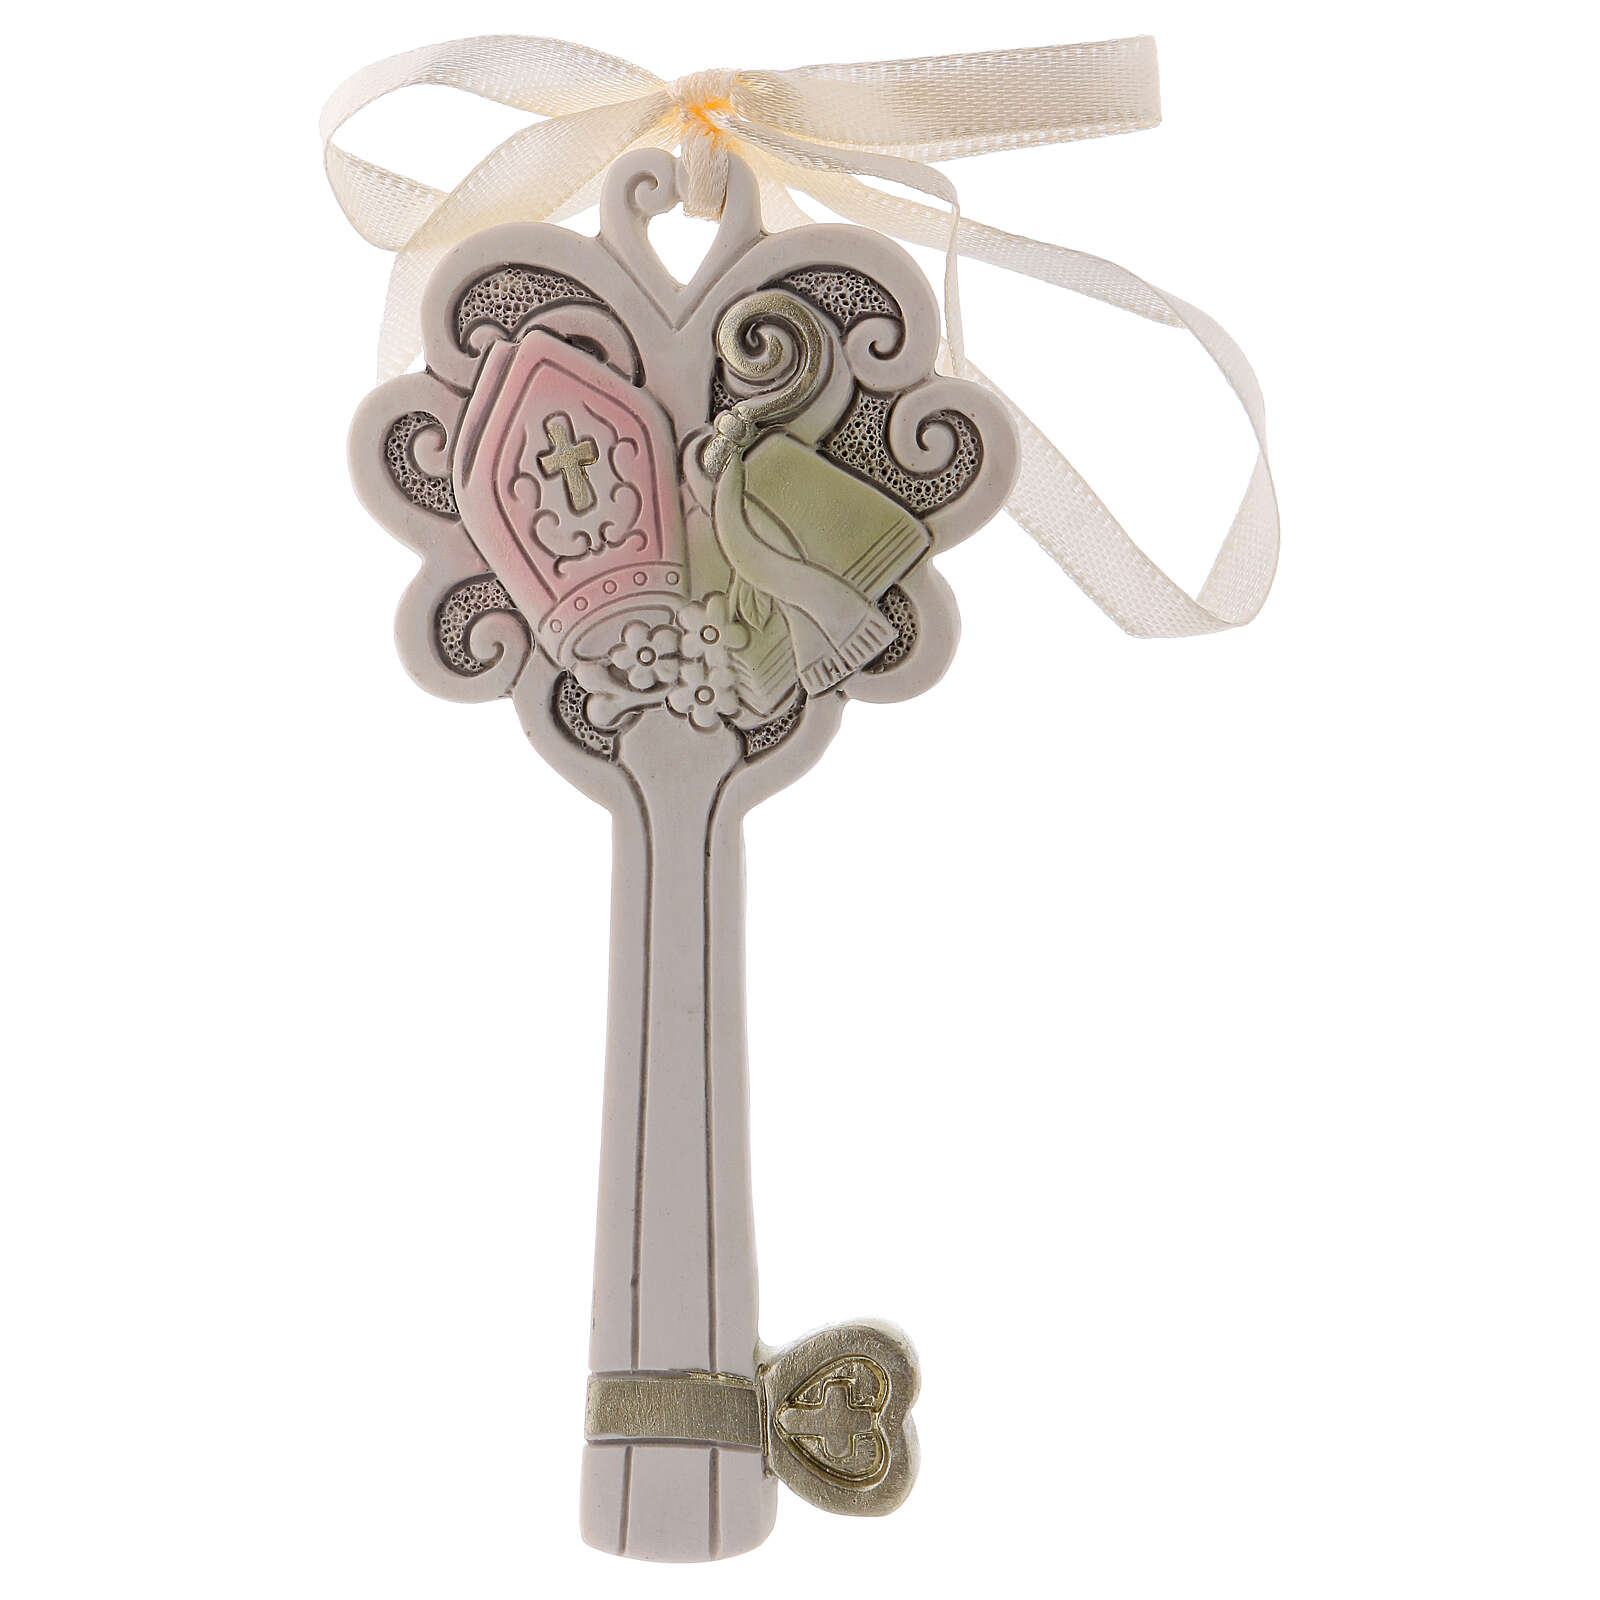 Key shaped favor mitre and crozier 4 in resin 3